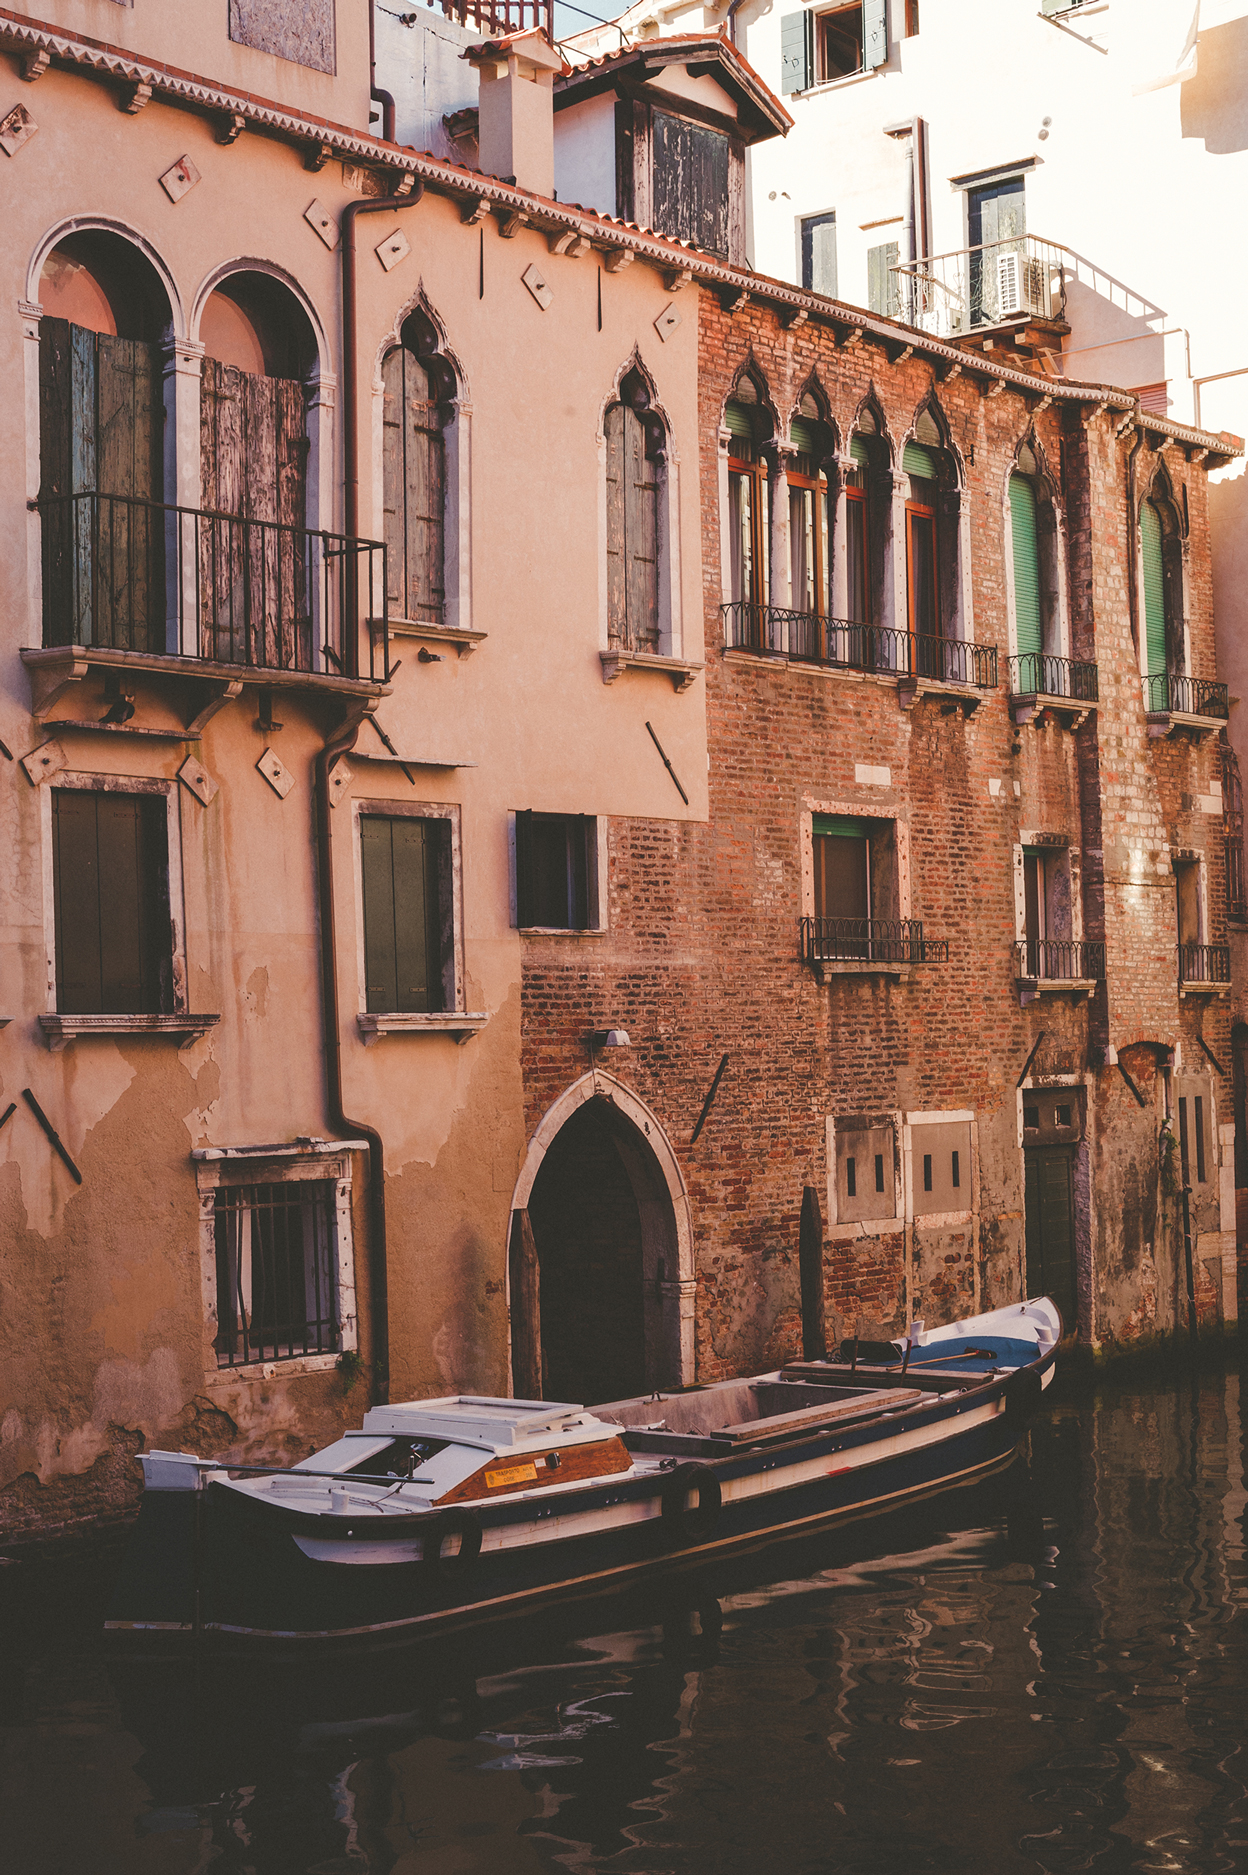 KC_Lifestyle_Photographer_OutdoorPhotography_Adventure_Photography_Venice_Italy18.jpg